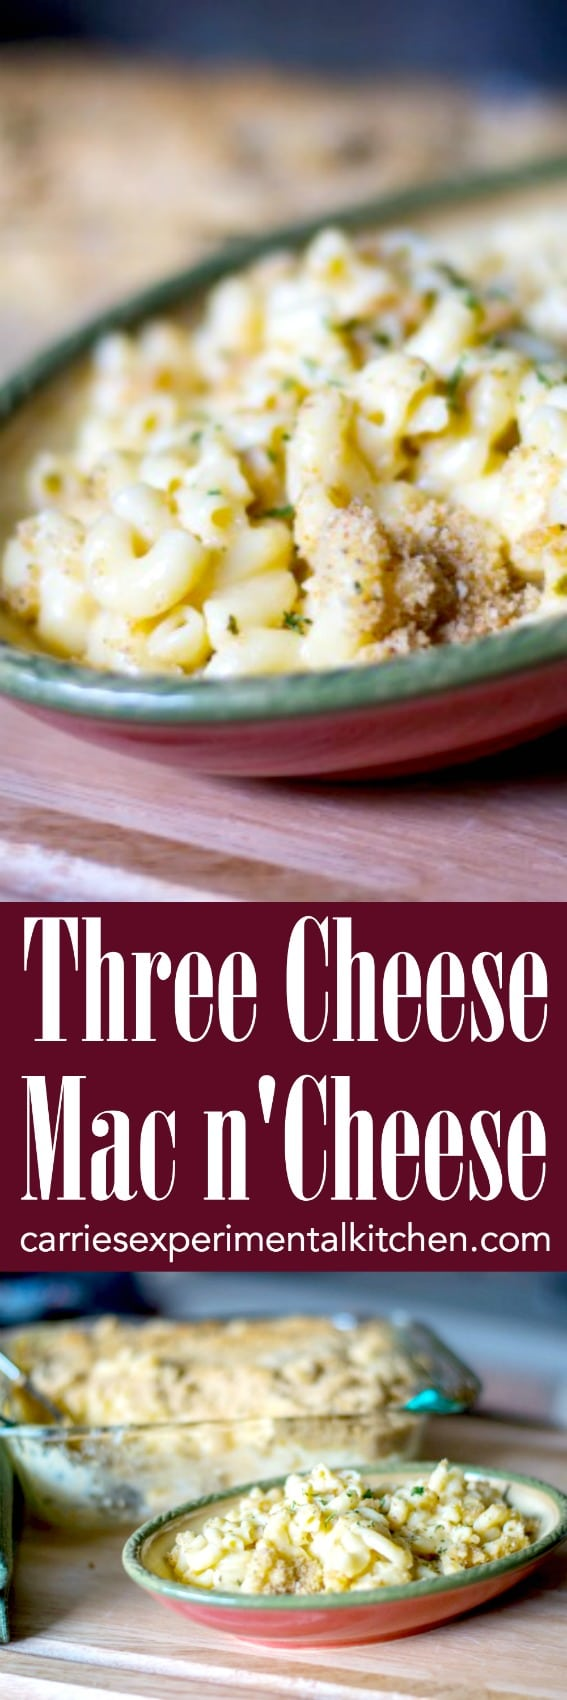 This Three Cheese Mac n' Cheese is so creamy. It's made with Velveeta, Asiago and Pecorino Romano cheeses; then baked until hot and bubbly. #pasta #casserole #cheese